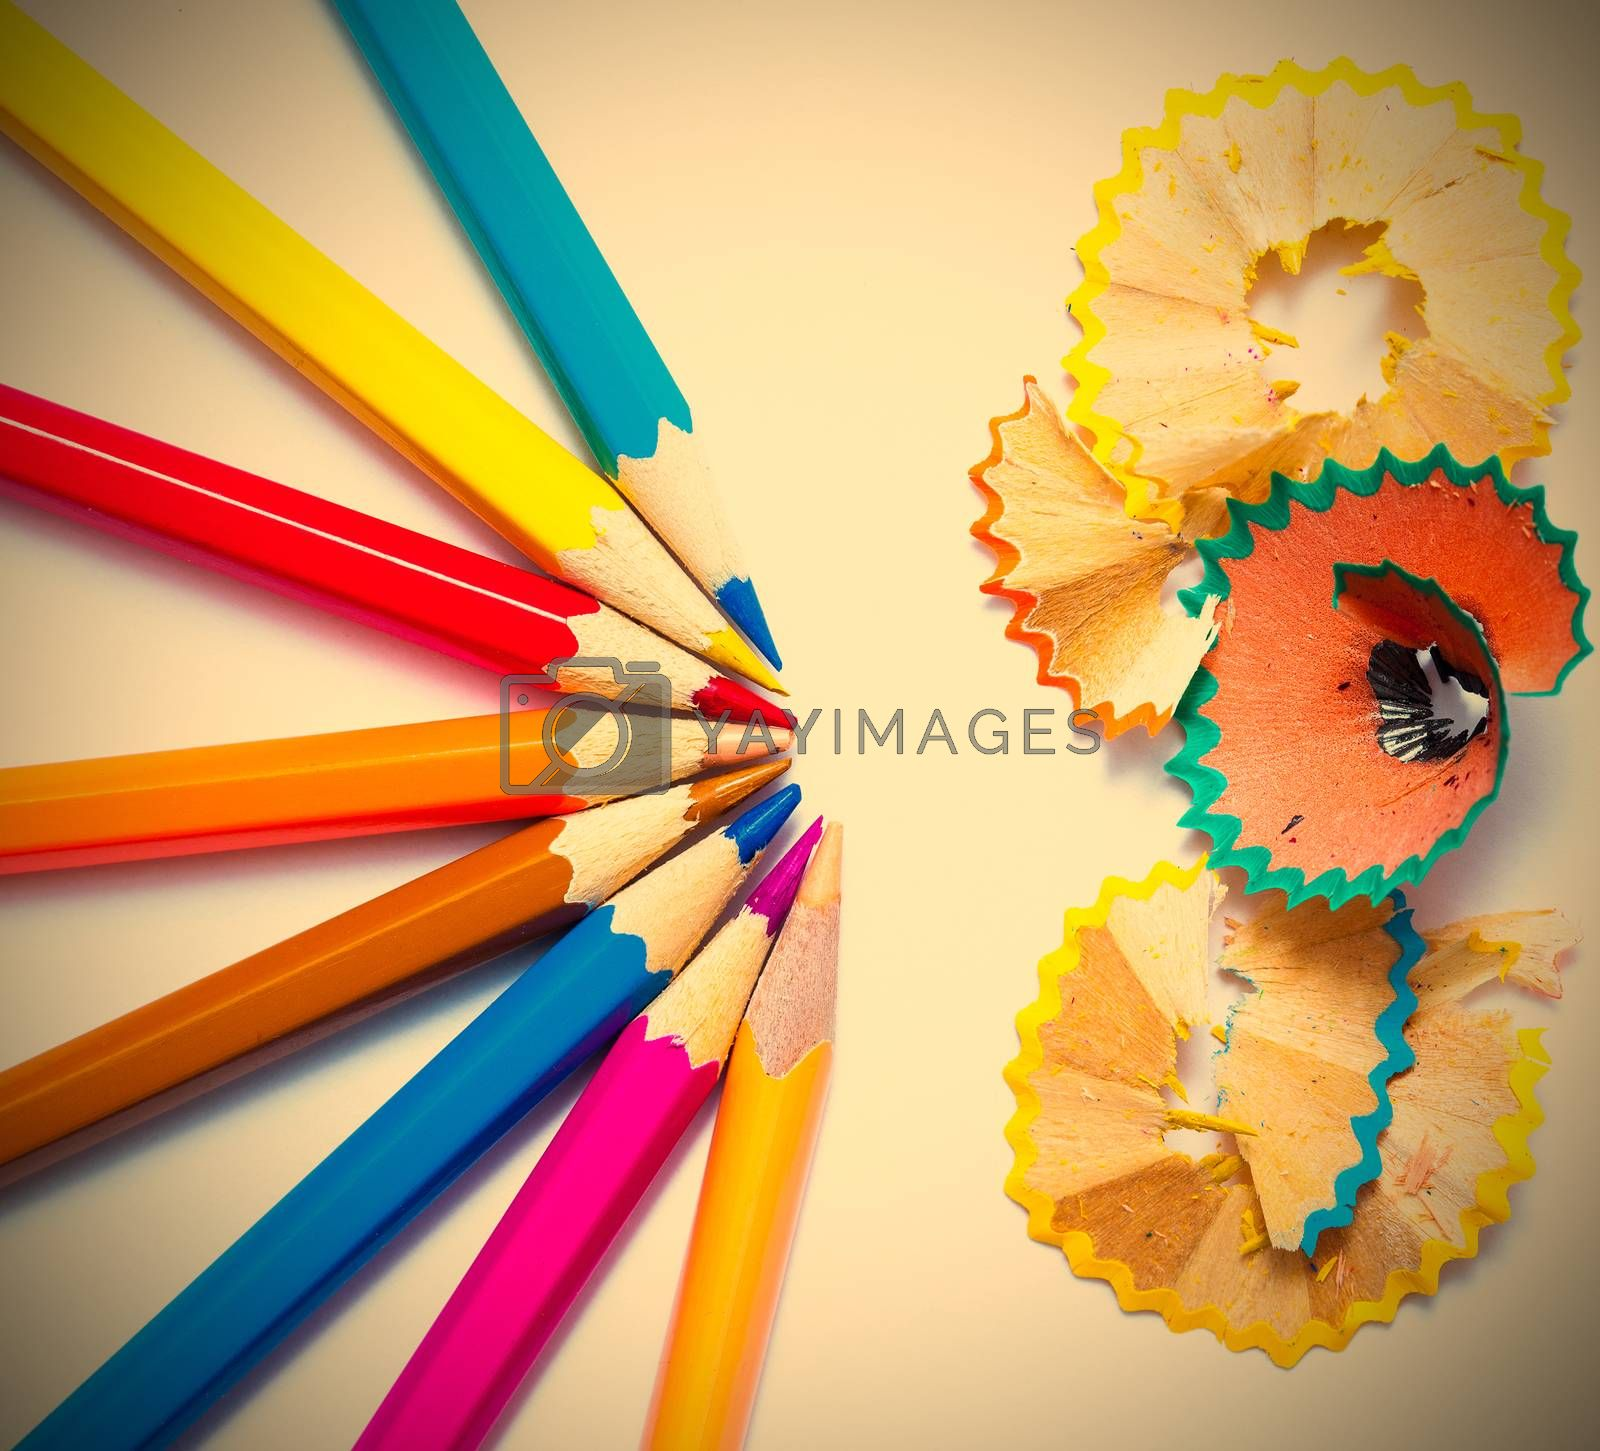 seven colored pencils and shavings on white background with copy space. insragram image retro style